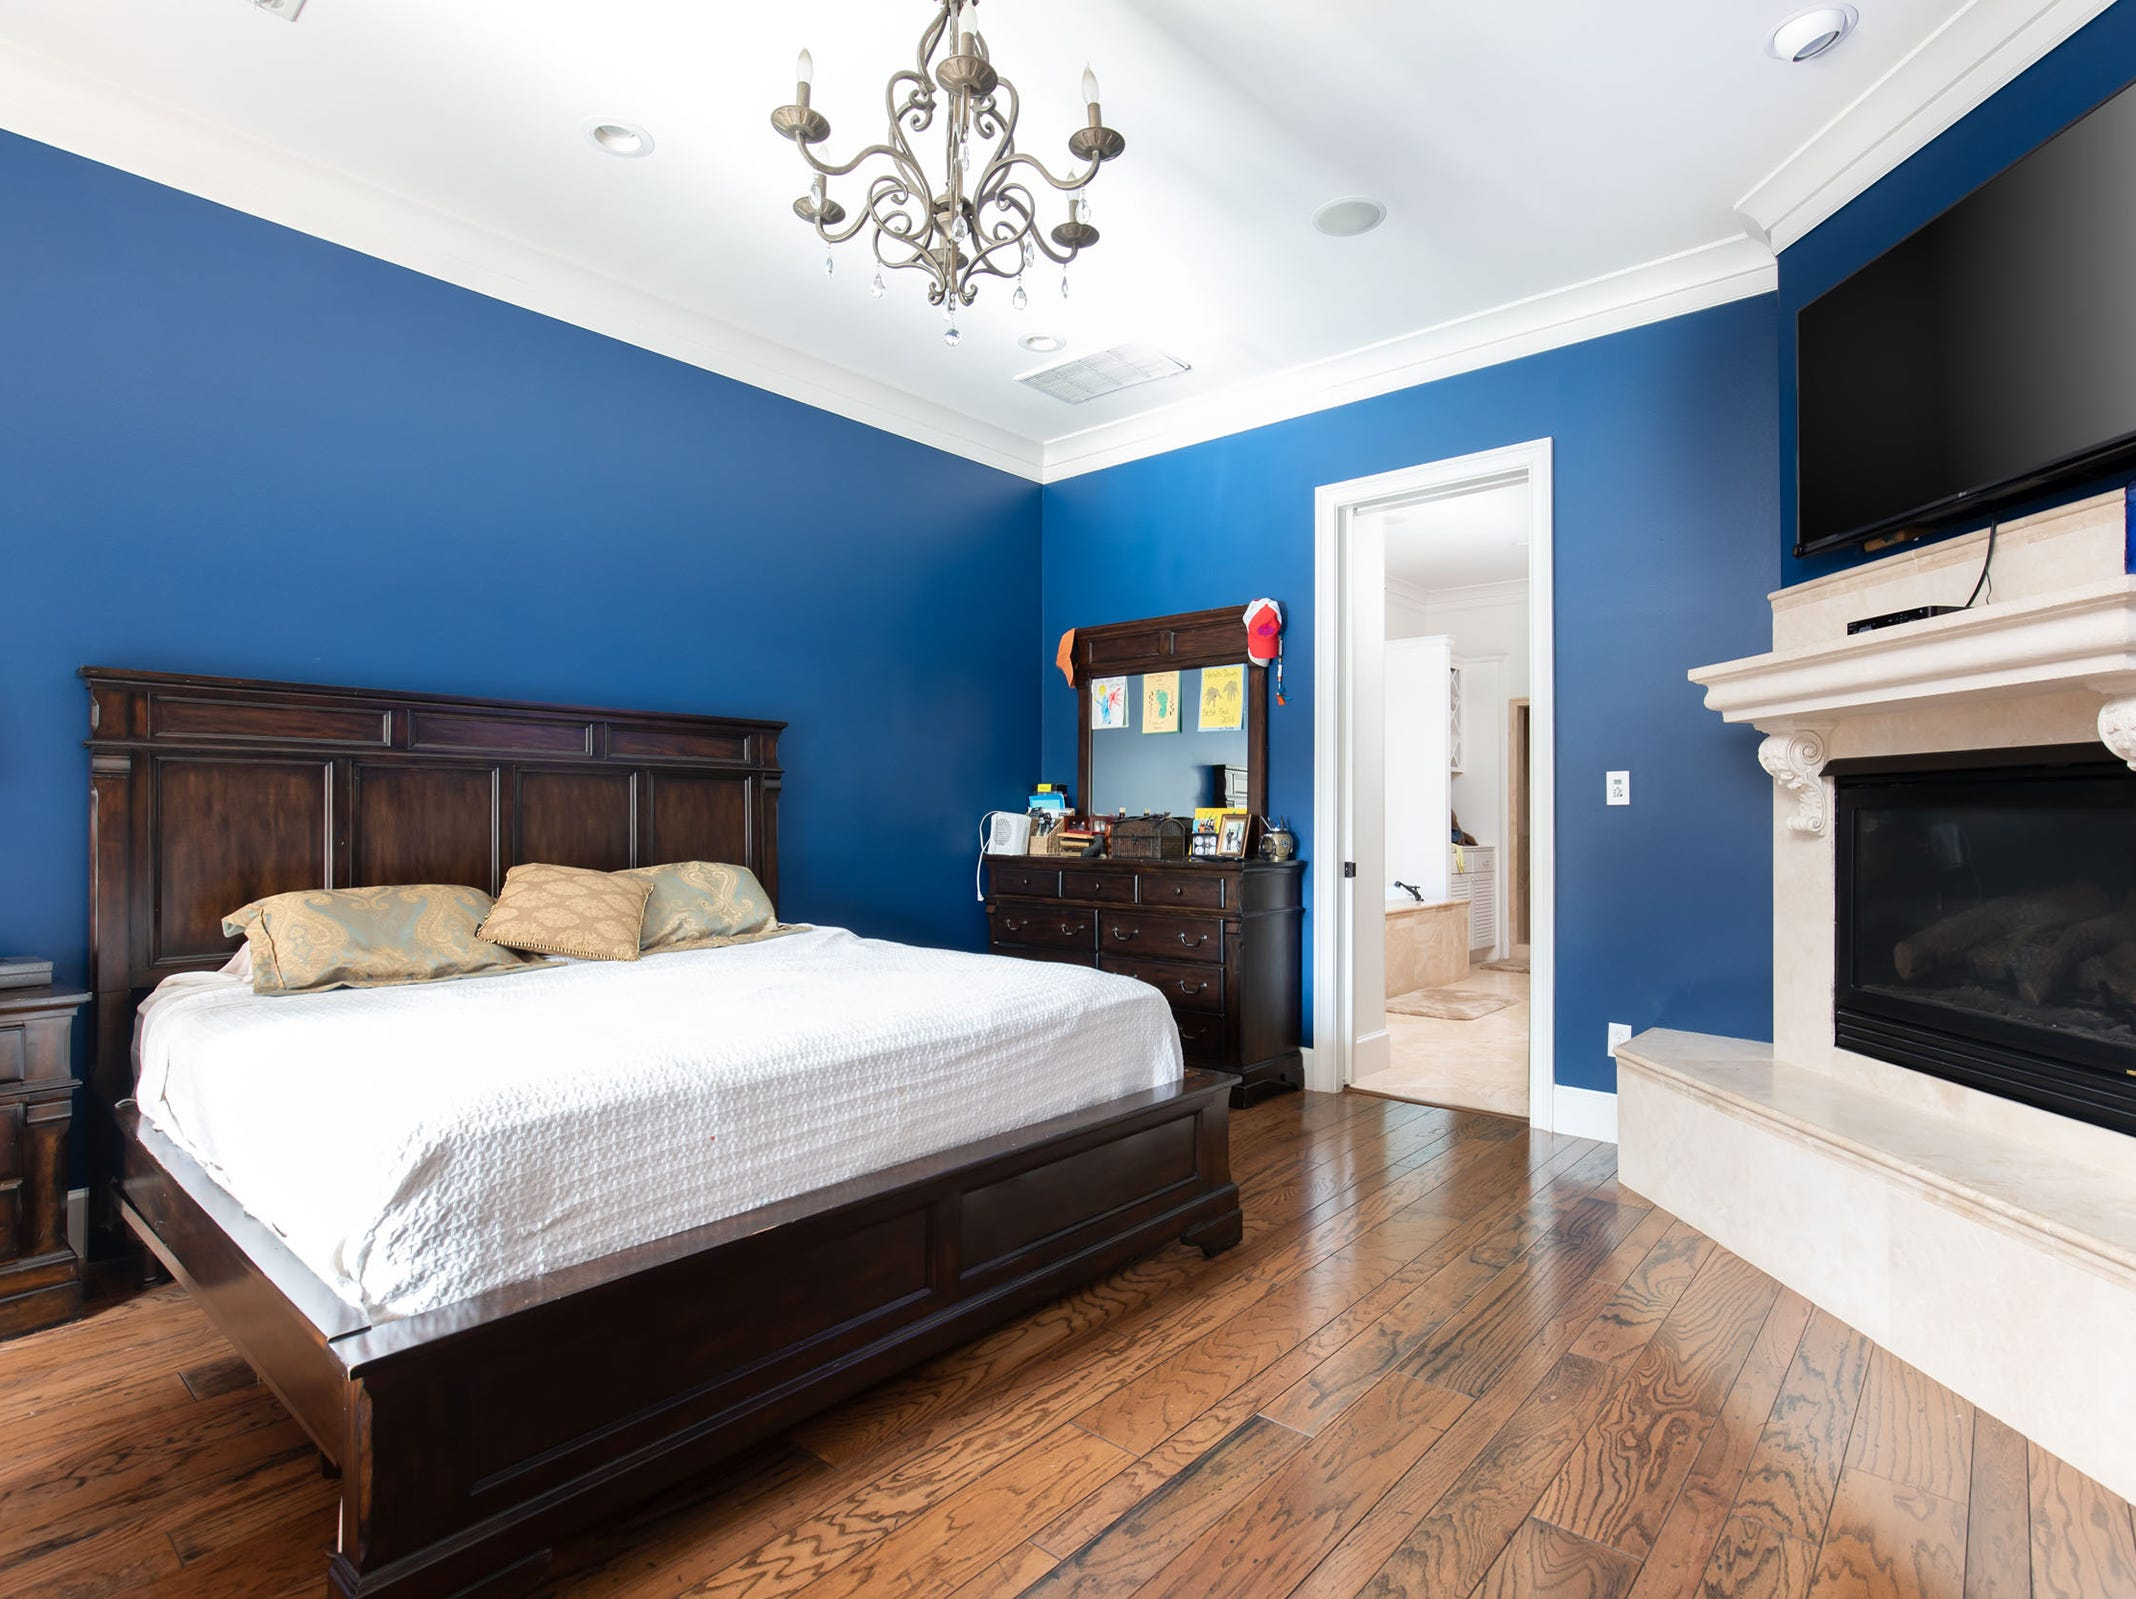 1329 Quiet Cove Court, one of two master suites in the home.